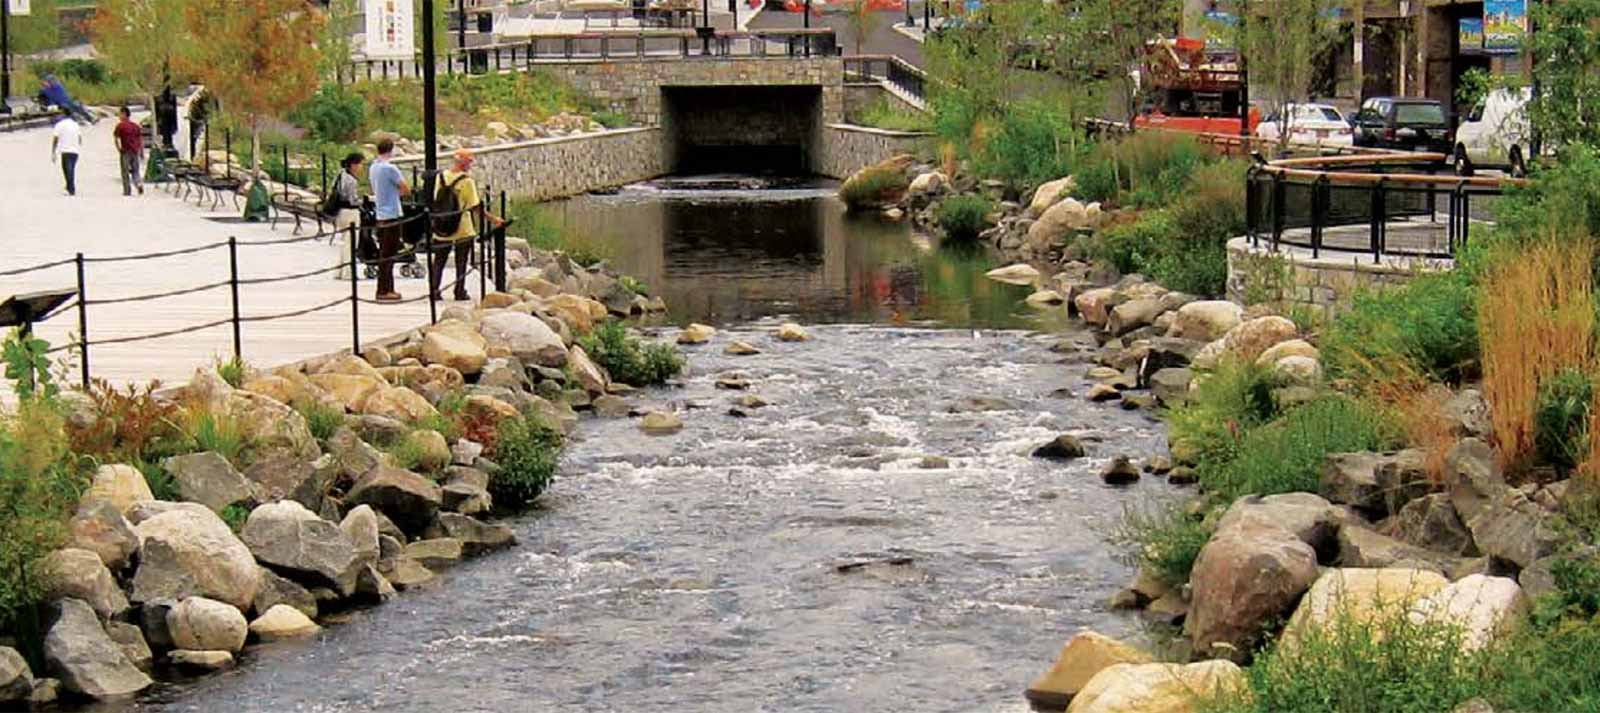 daylighting streams breathing life into urban streams and